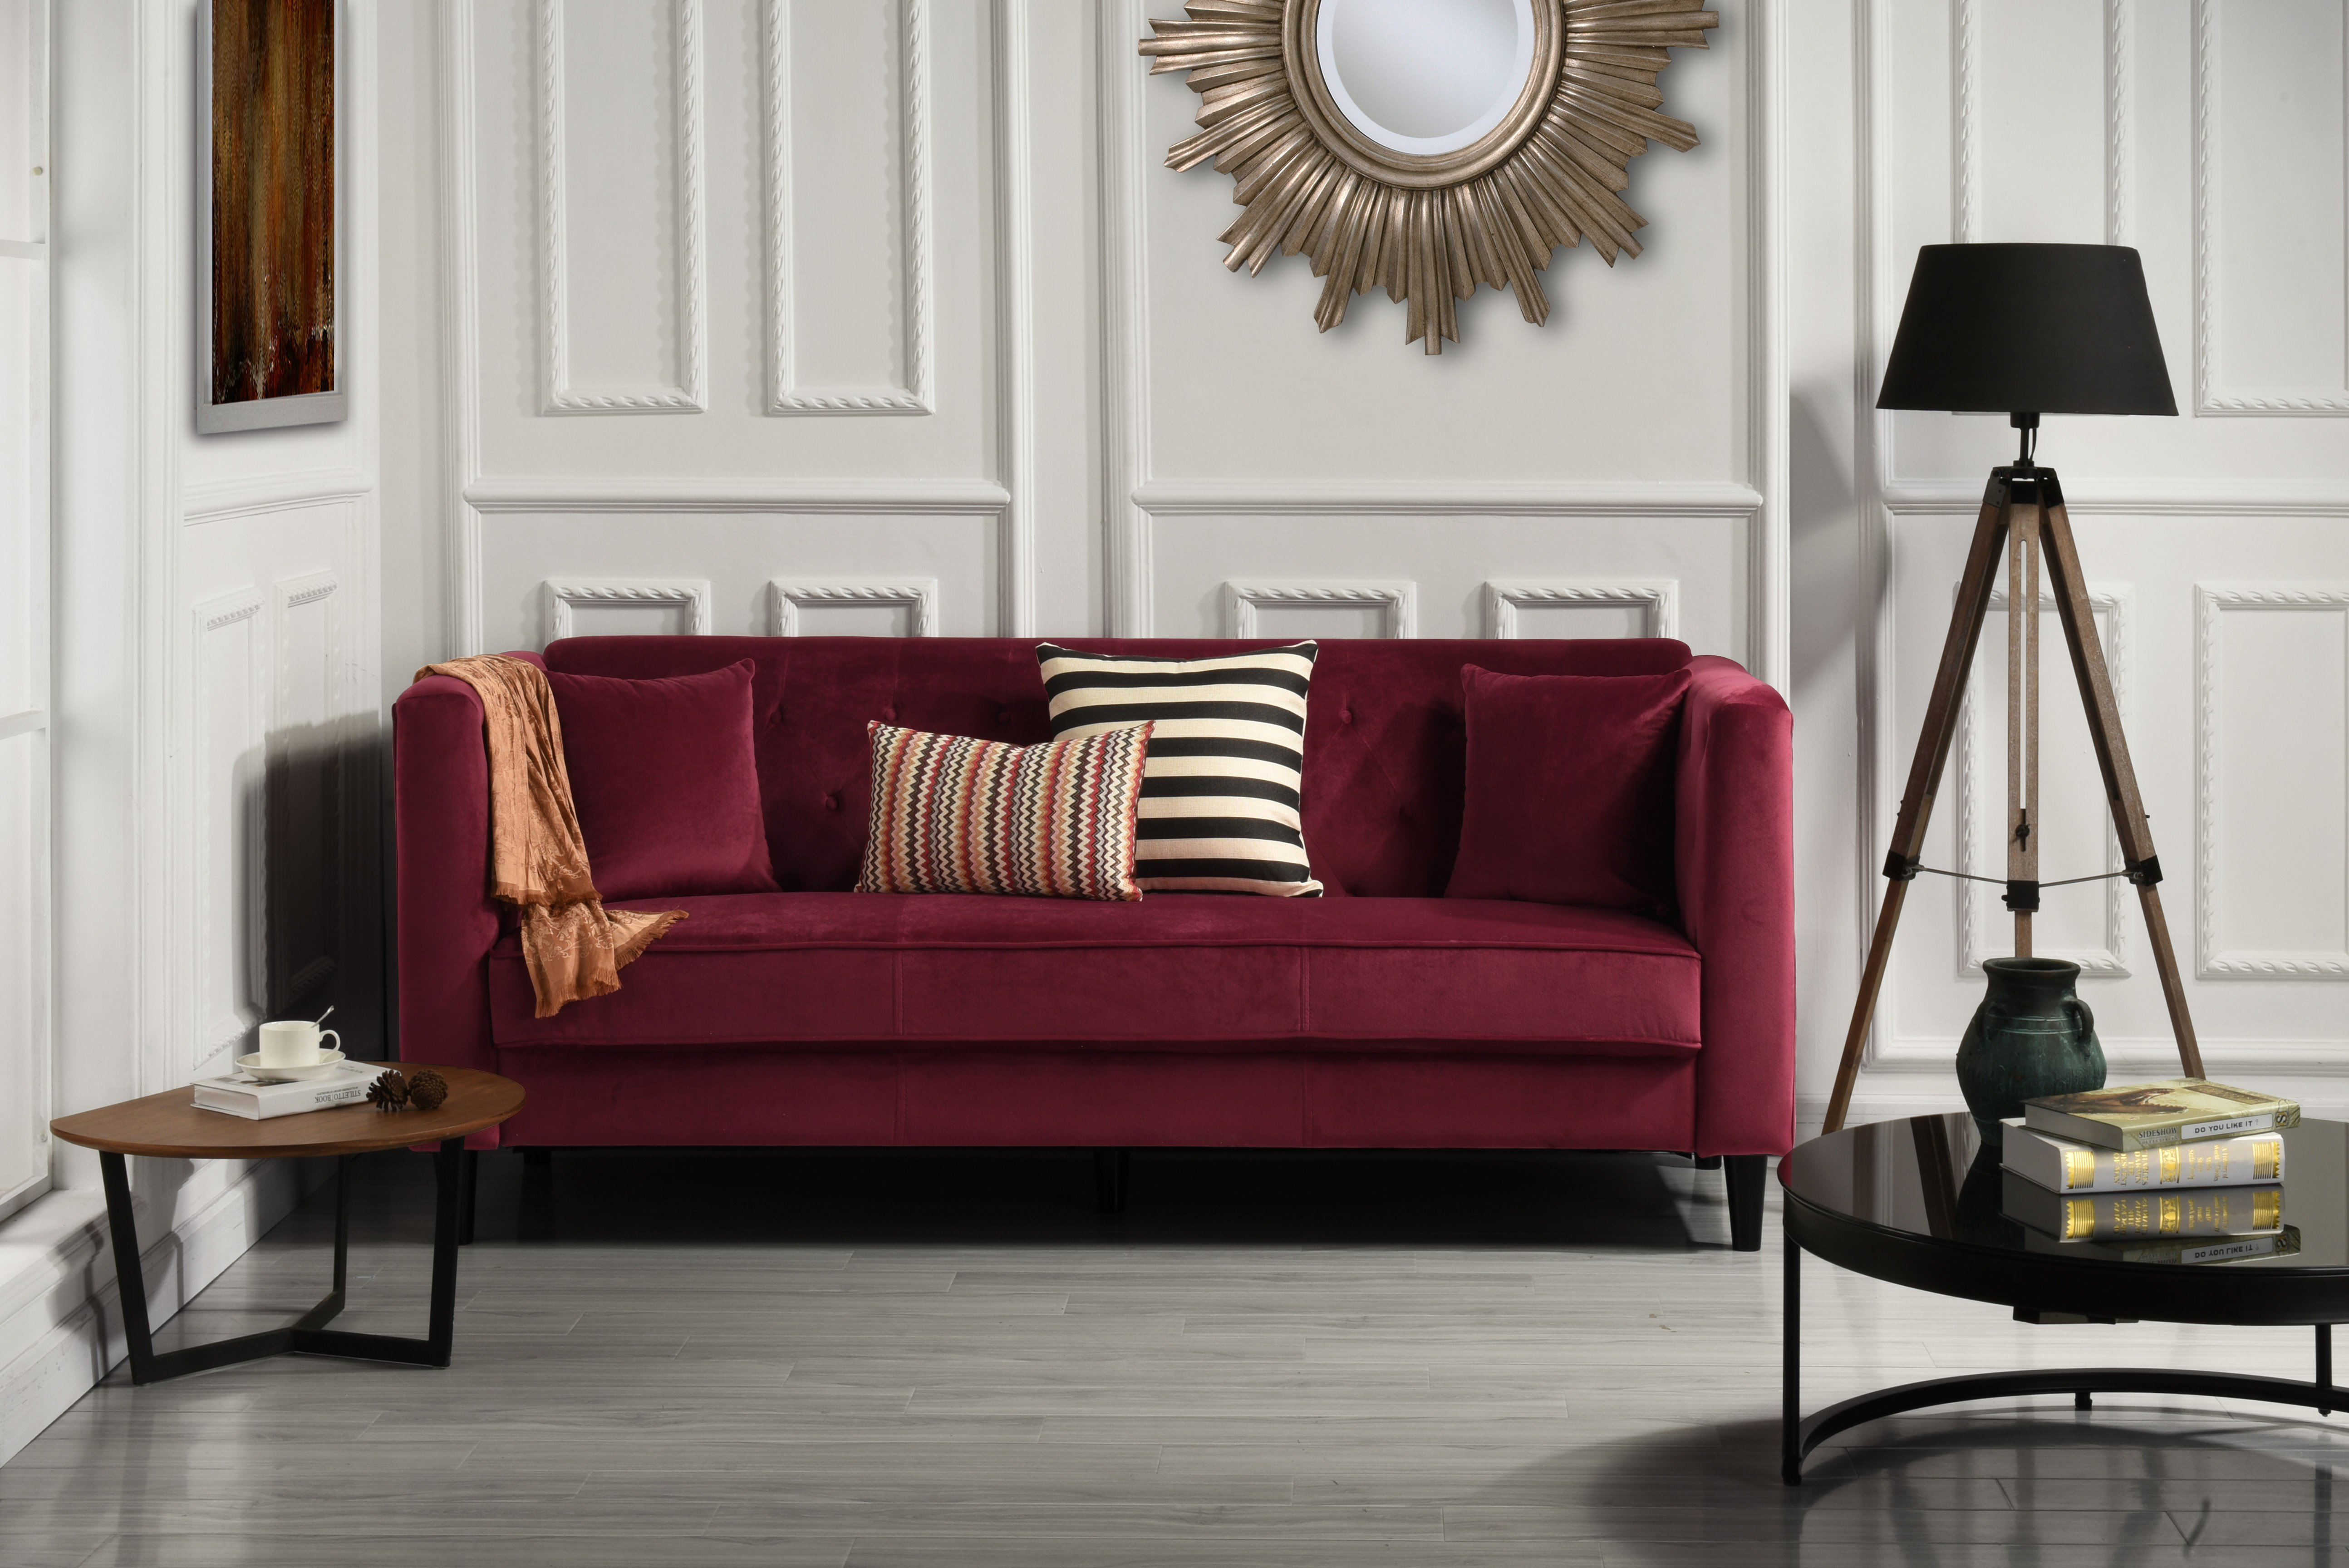 Details about Mid-Century Ultra Modern Velvet Sofa, Living Room Couch  Tufted Buttons, Red